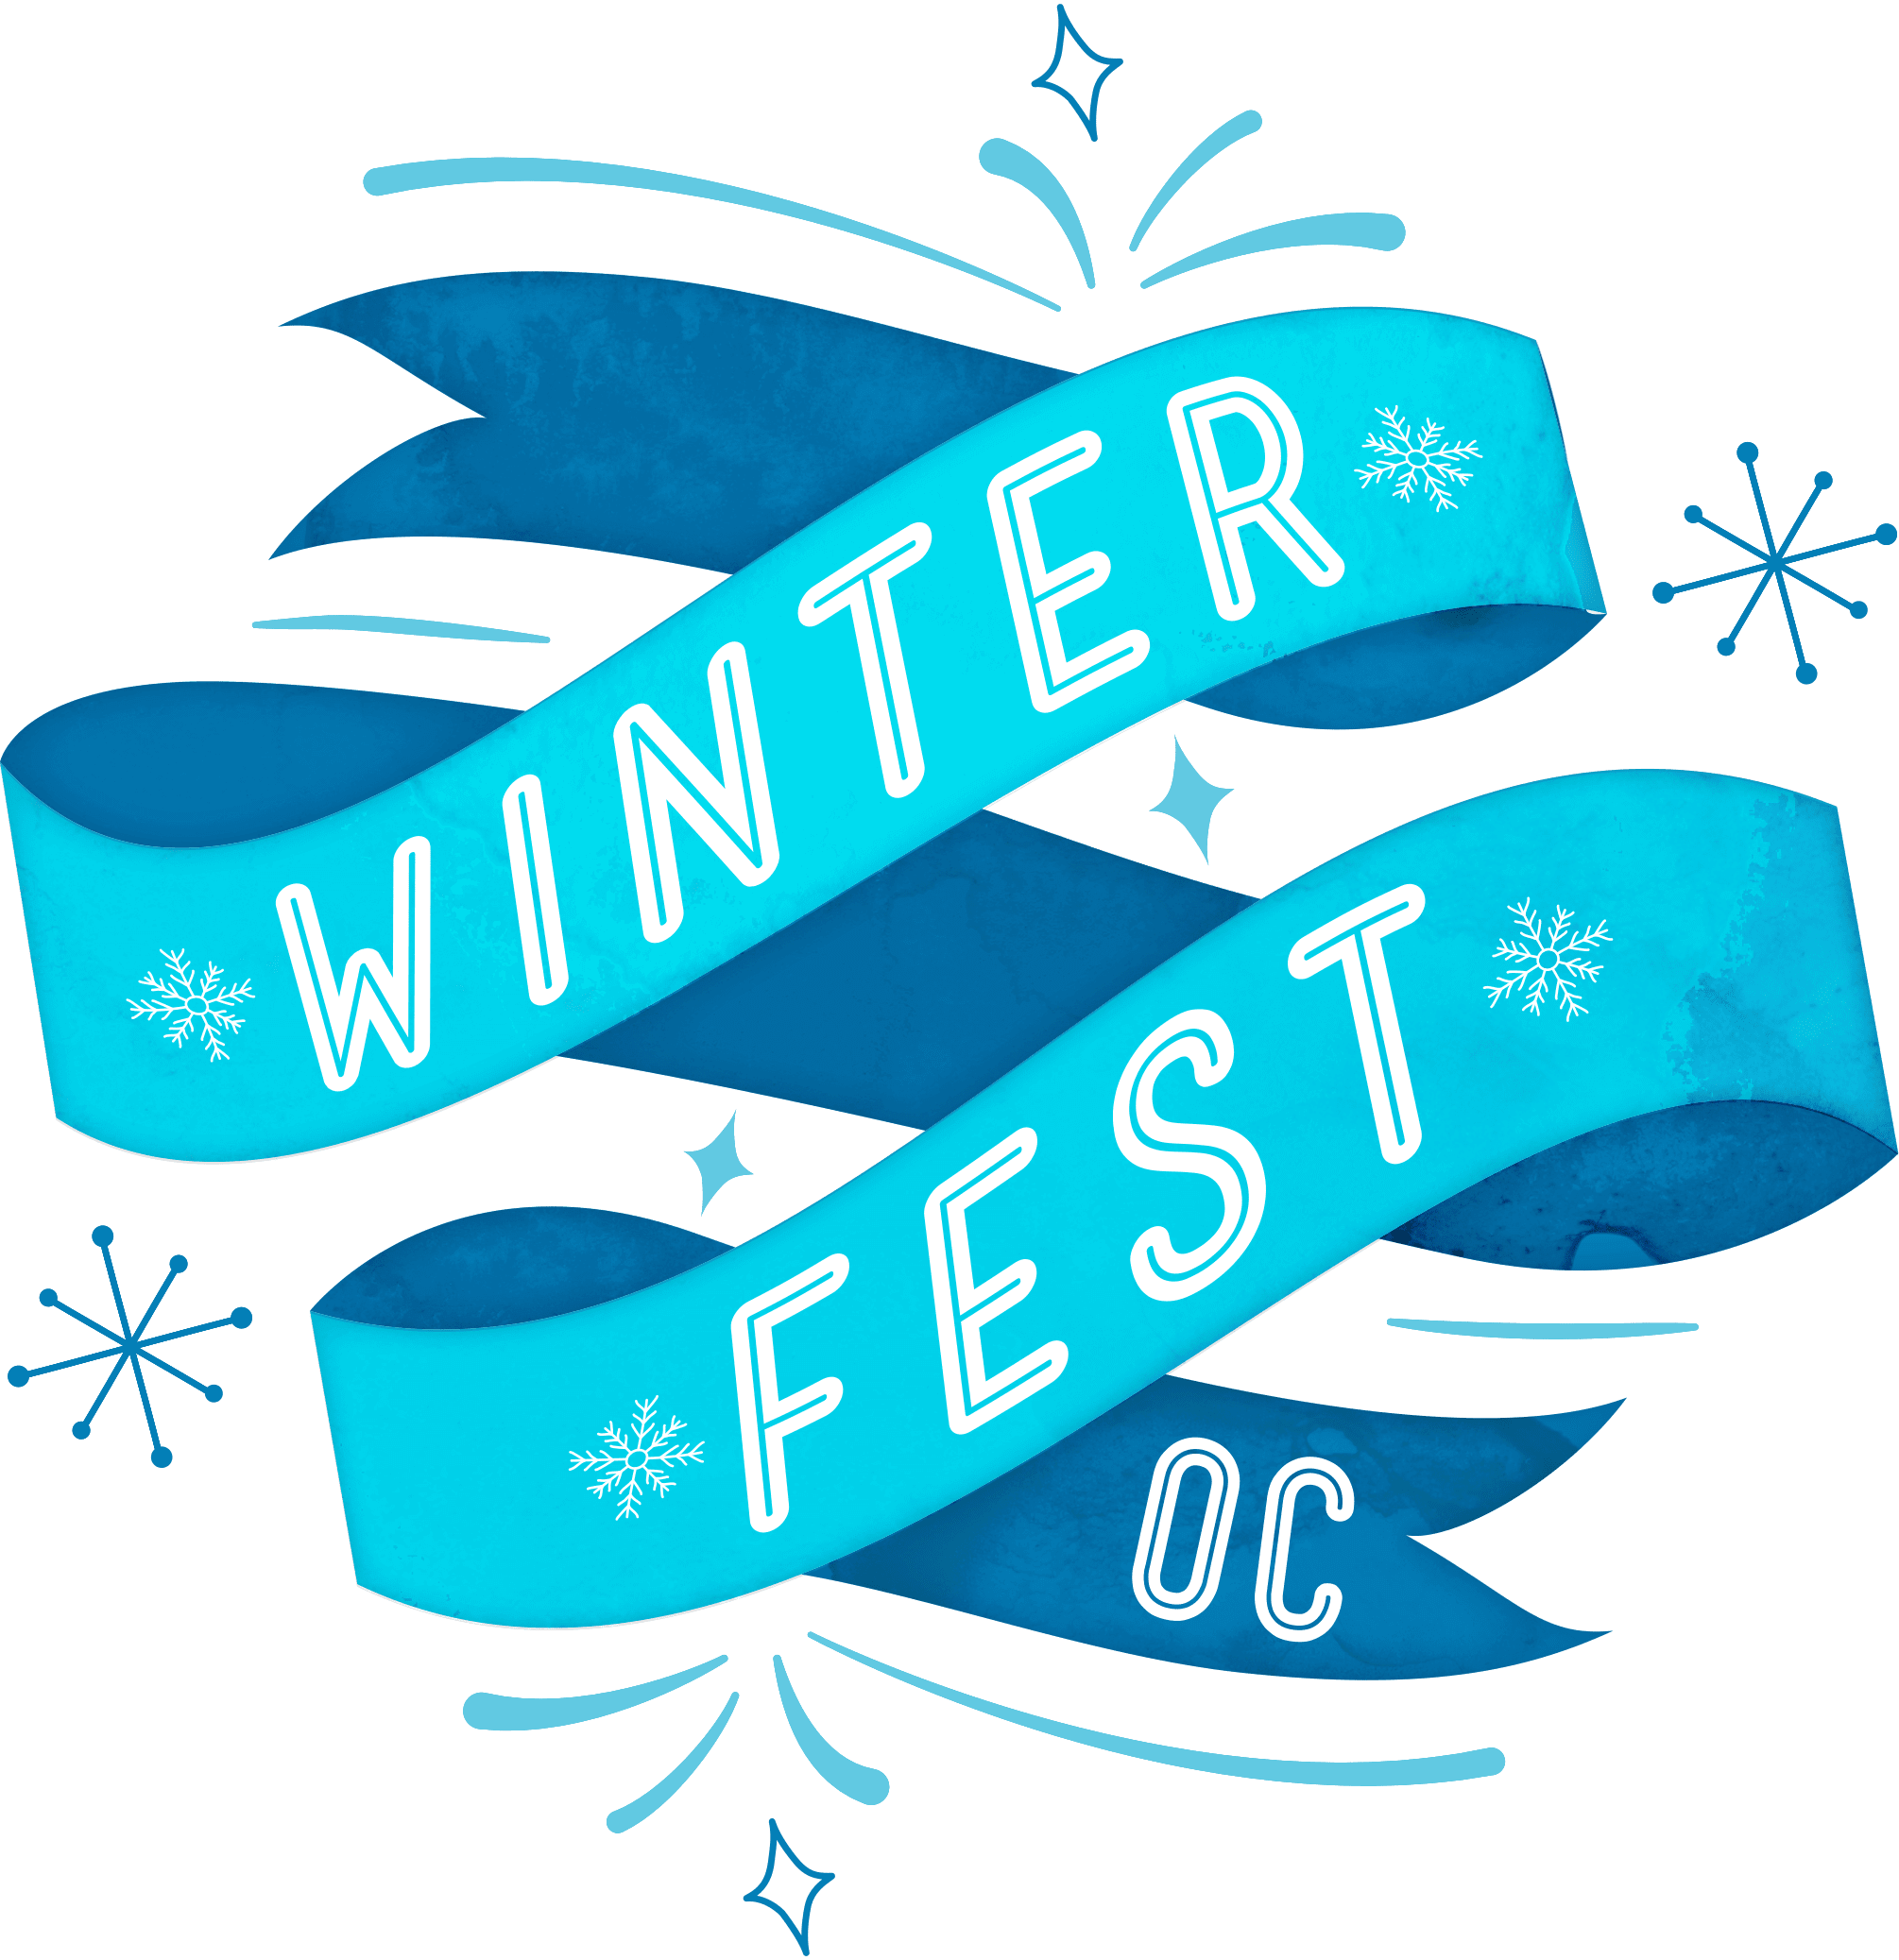 Winter Fest OC 2020